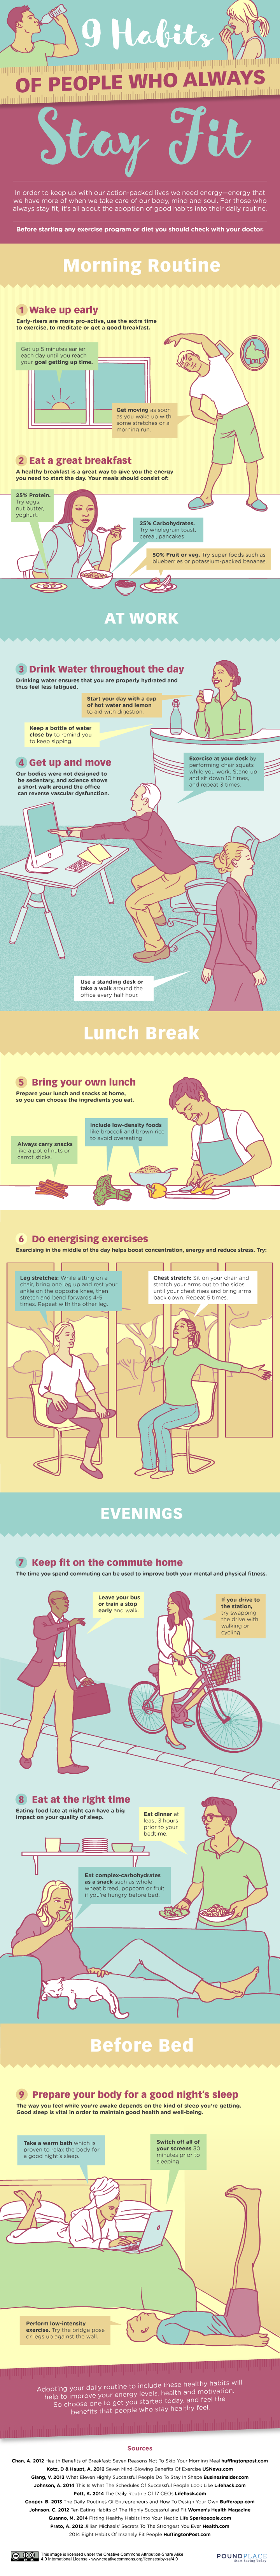 9 Habits Of People Who Always Stay Fit #Infographic